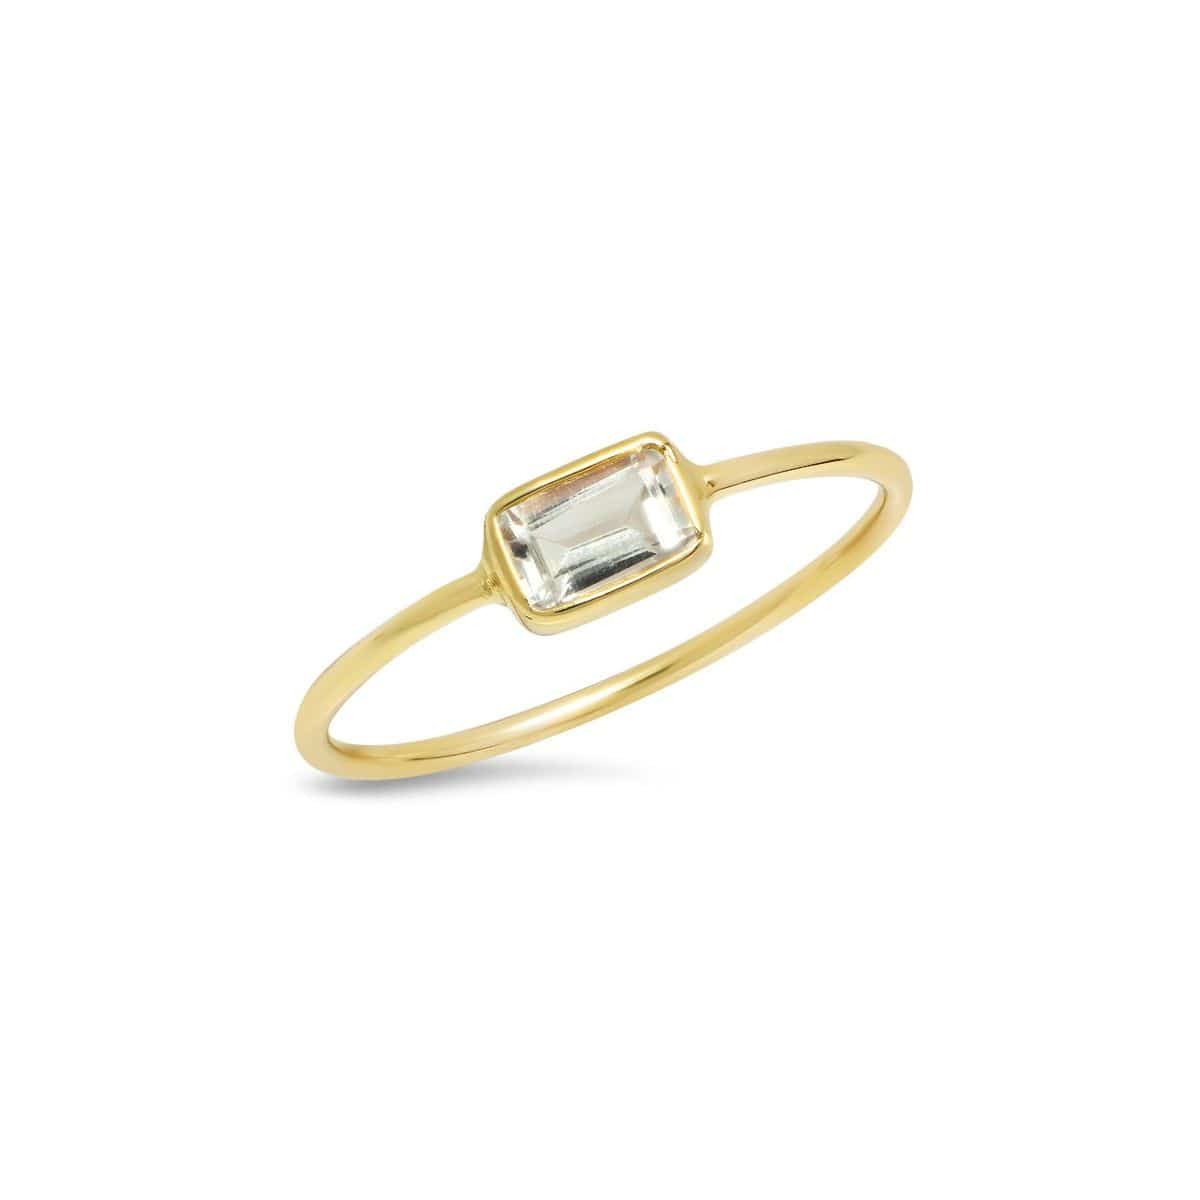 White Topaz Emerald Cut Gold Bezel Ring